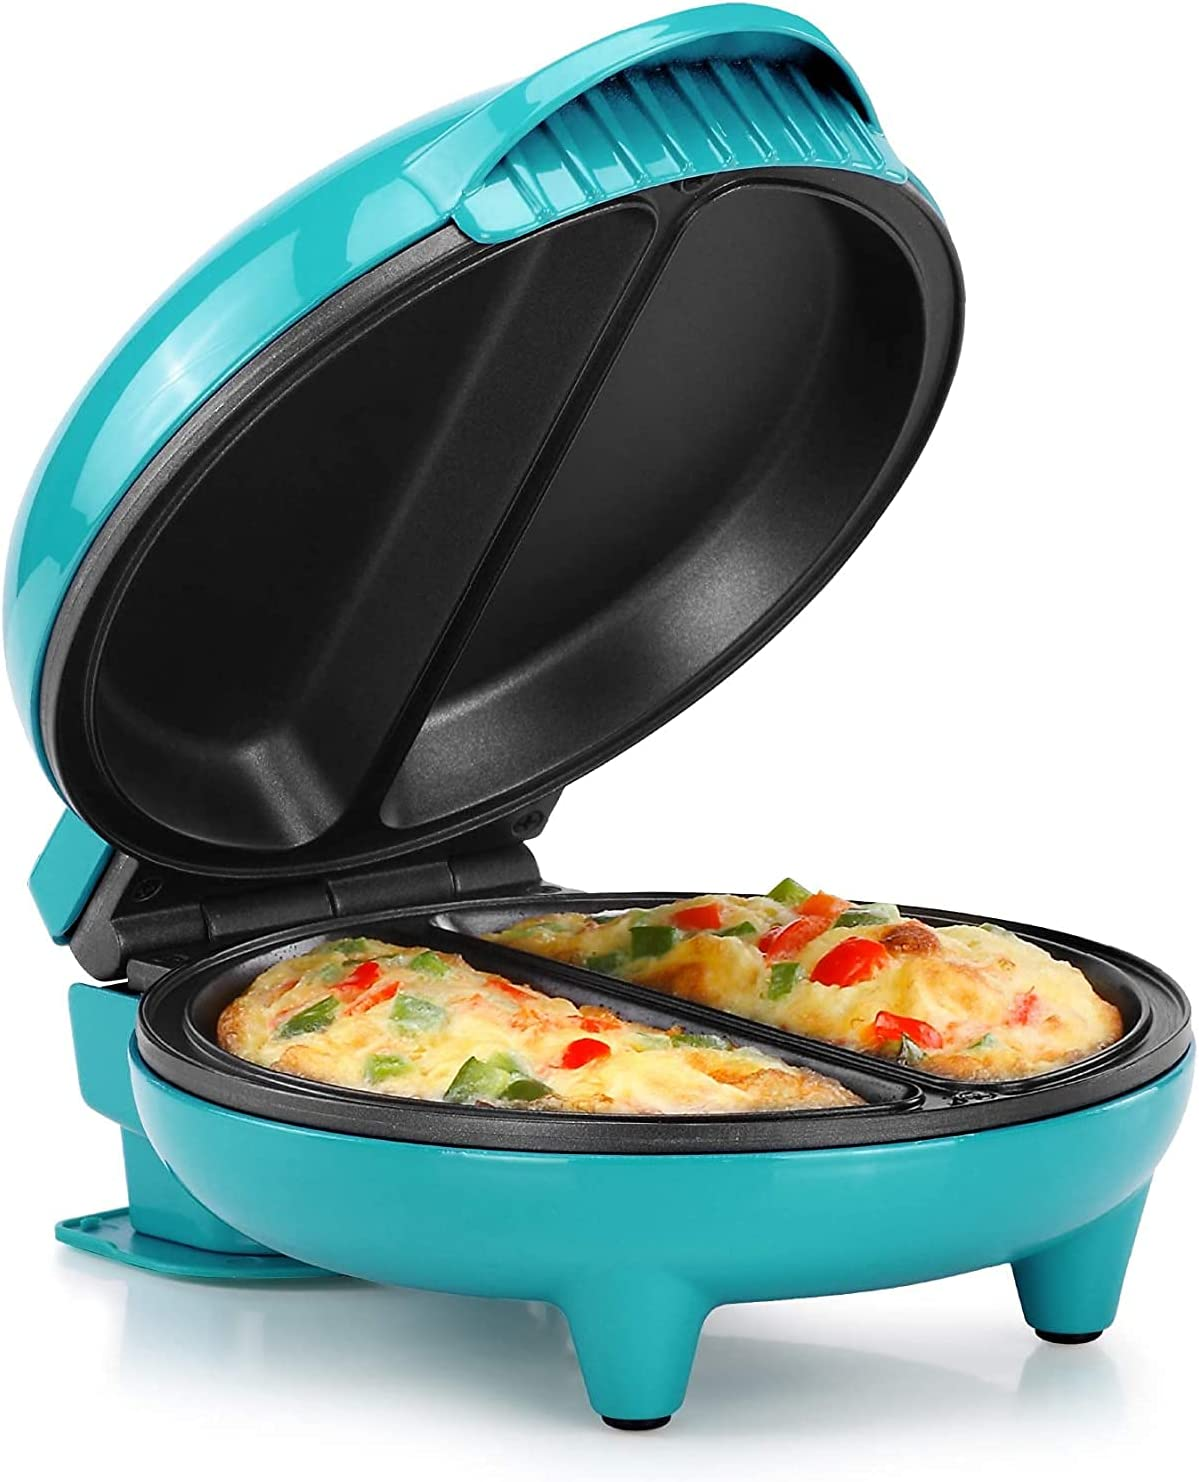 Holstein Seattle Mall Reservation Housewares HH-09125007E Omelet 1 Maker Teal. Pack